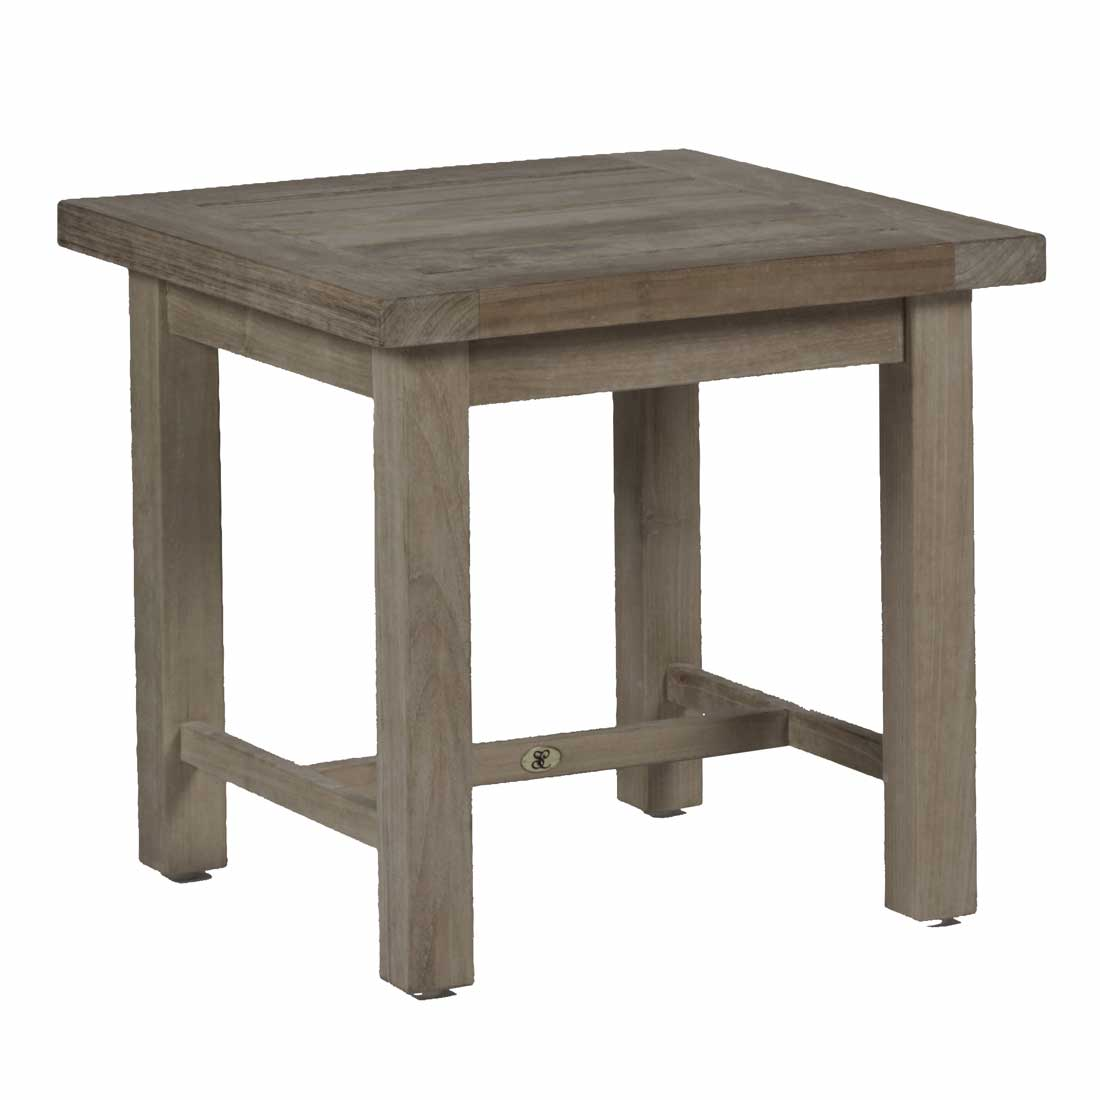 Club Teak End Table Outdoor End Table - Teak outdoor end table